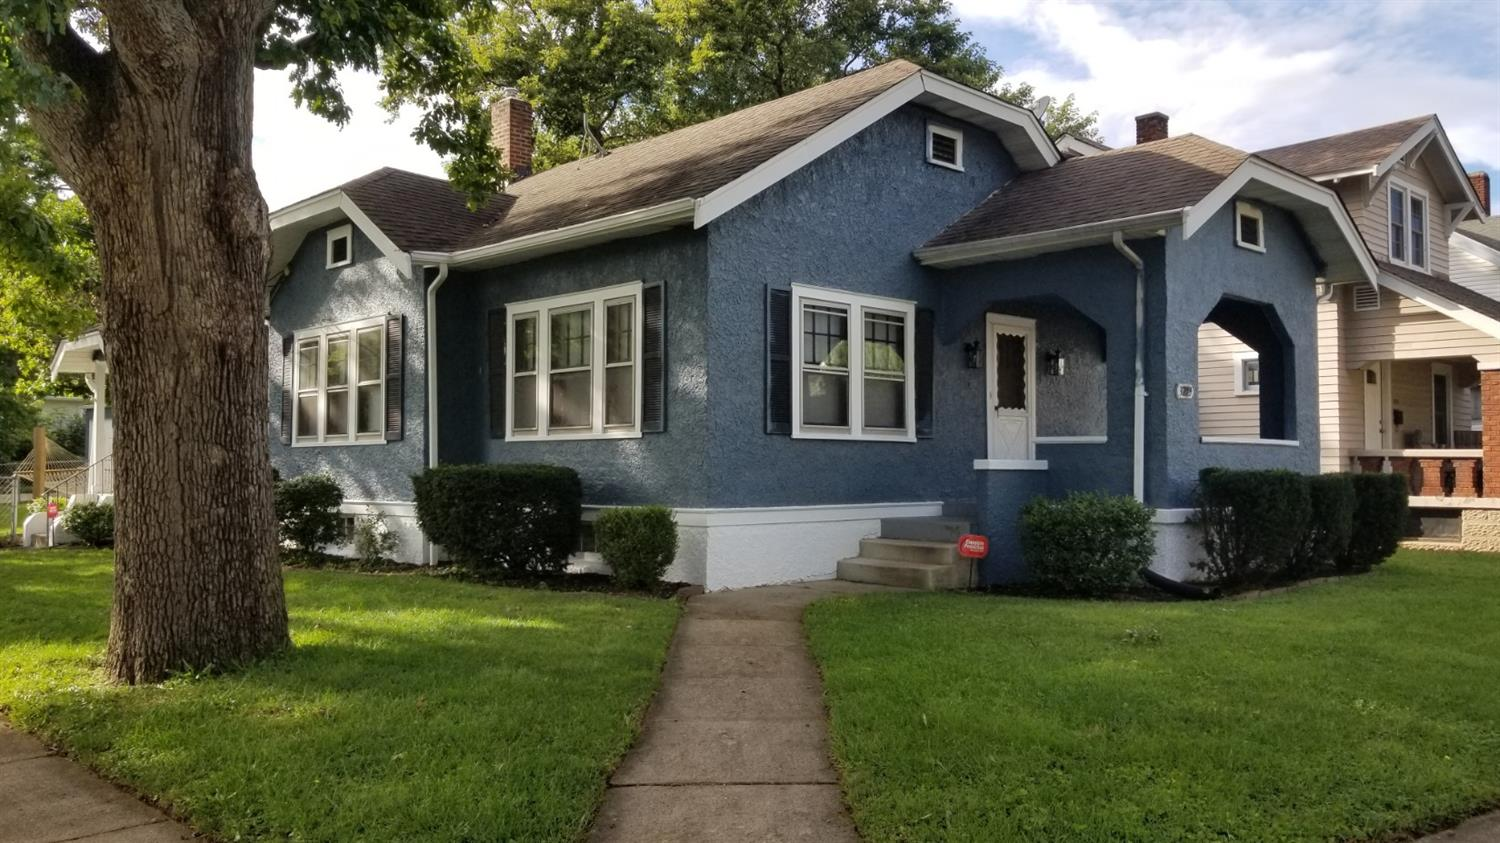 3219 Griesmer Ave Lindenwald, OH